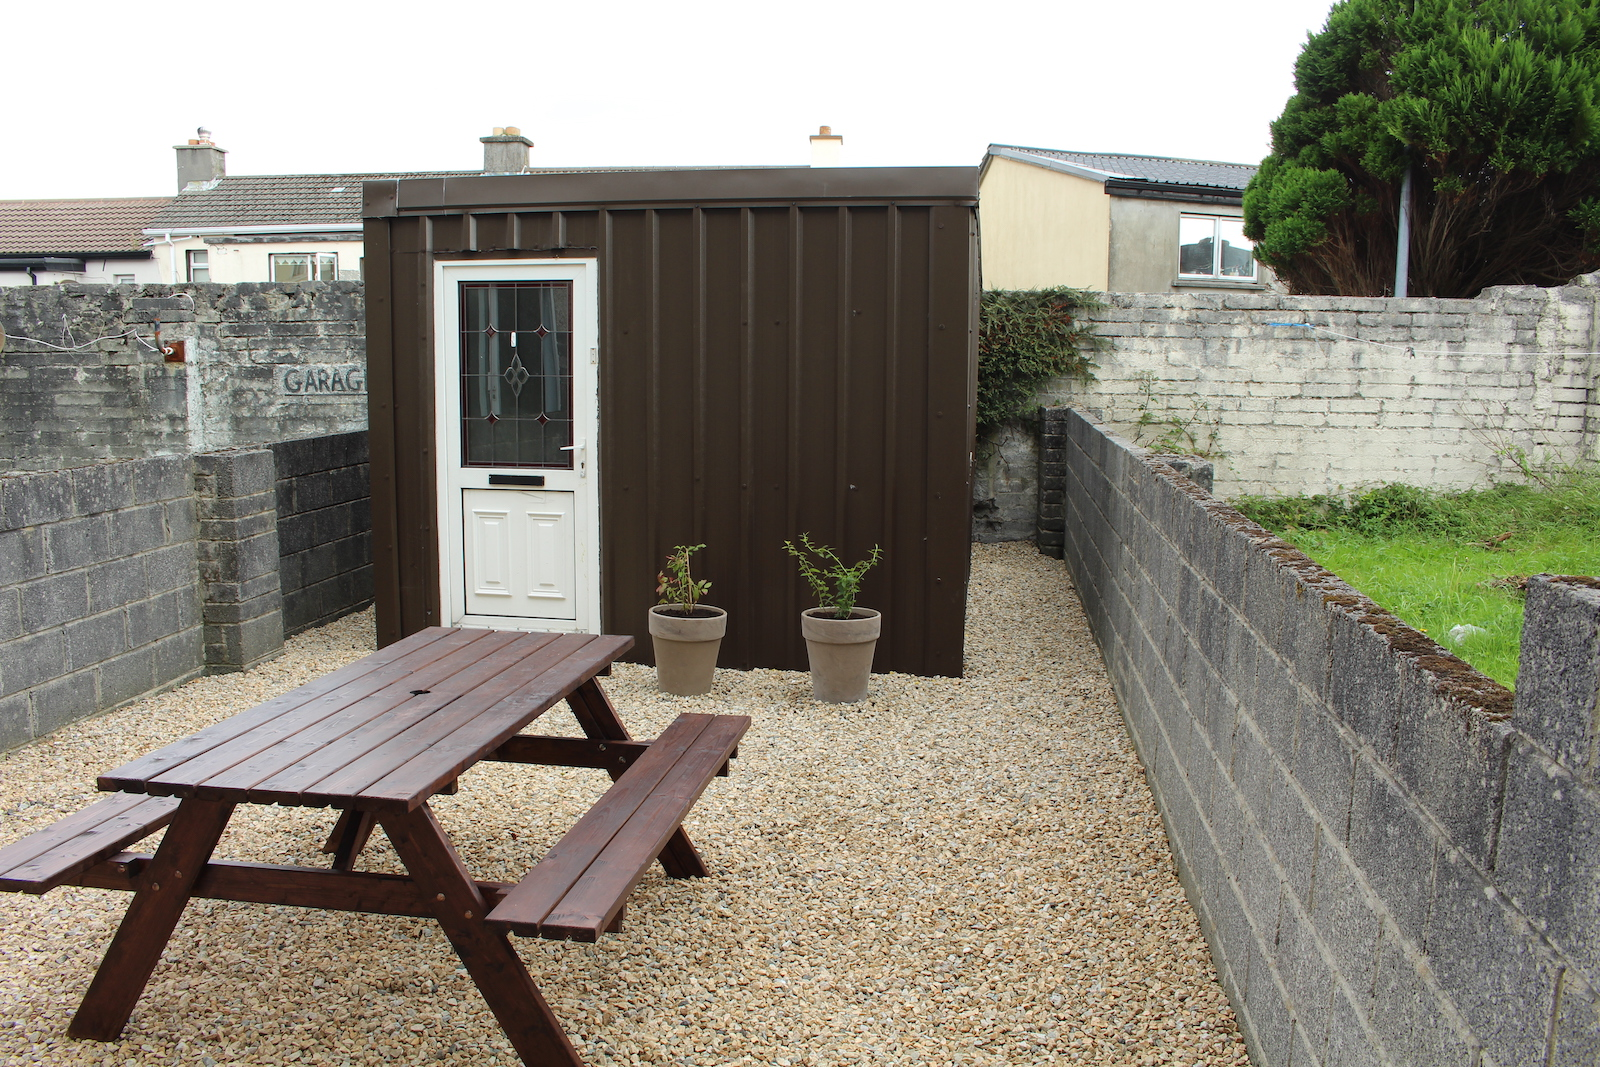 Garden transformation in Galway - After